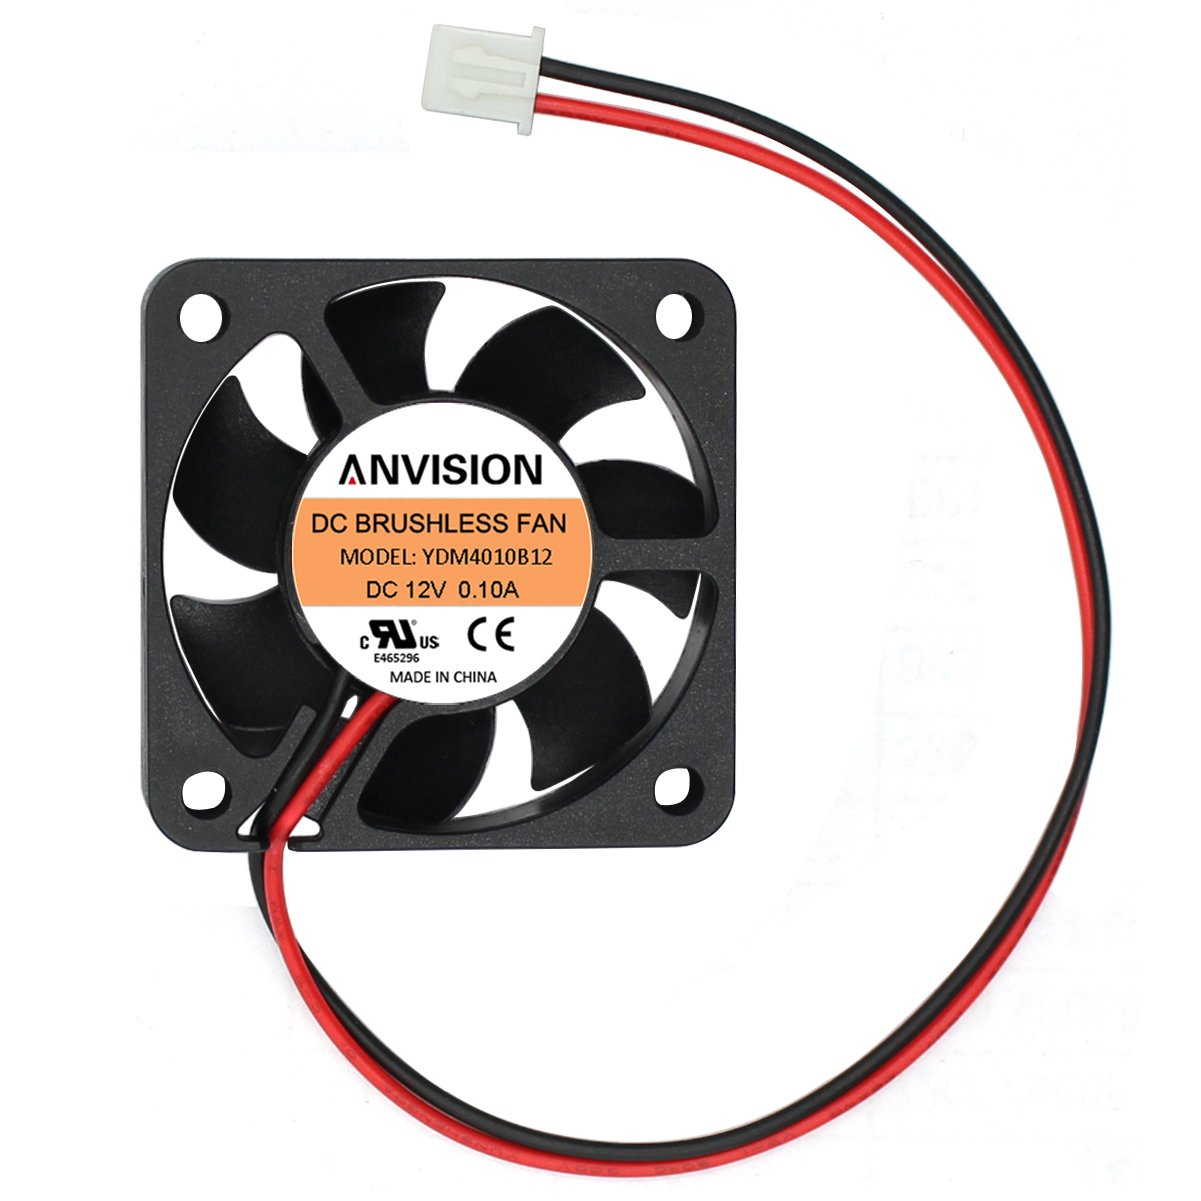 ANVISION 40mm x 10mm DC 12V Brushless Cooling Fan, Dual Ball Bearing, YDM4010B12